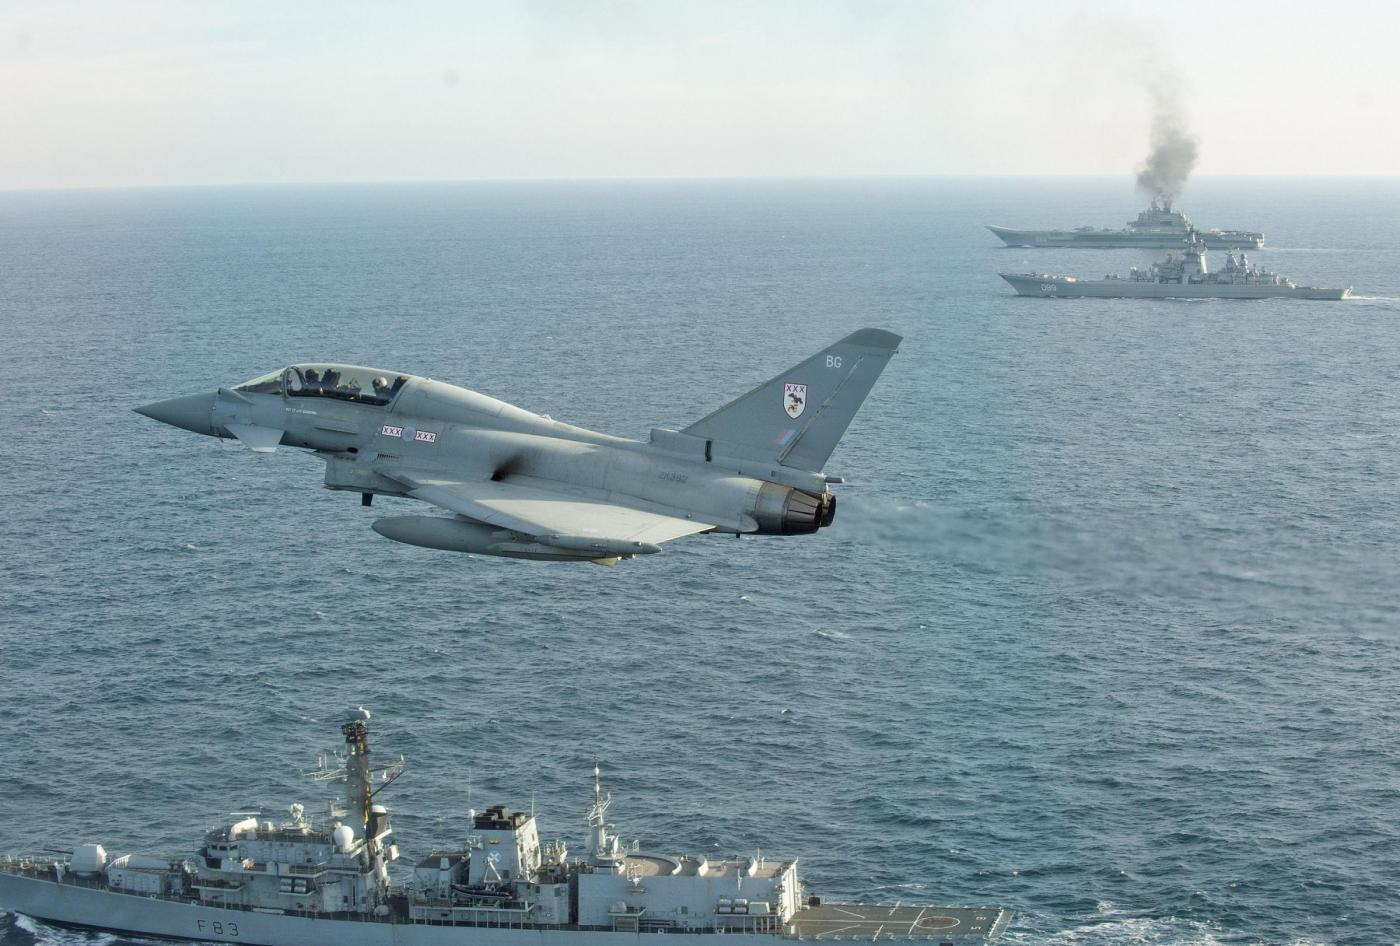 Undated handout photo issued by the MoD of HMS St Albans and an RAF Typhoon (foreground), with the Russian Warships Petr Velikiy (centre) and the Admiral Kuznetsov (background) as they transit near to our sovereign waters on their way back to Russia. PRESS ASSOCIATION Photo. Issue date: Wednesday January 25, 2017. See PA story DEFENCE Russia. Photo credit should read: MoD Crown Copyright/PA Wire  NOTE TO EDITORS: This handout photo may only be used in for editorial reporting purposes for the contemporaneous illustration of events, things or the people in the image or facts mentioned in the caption. Reuse of the picture may require further permission from the copyright holder.